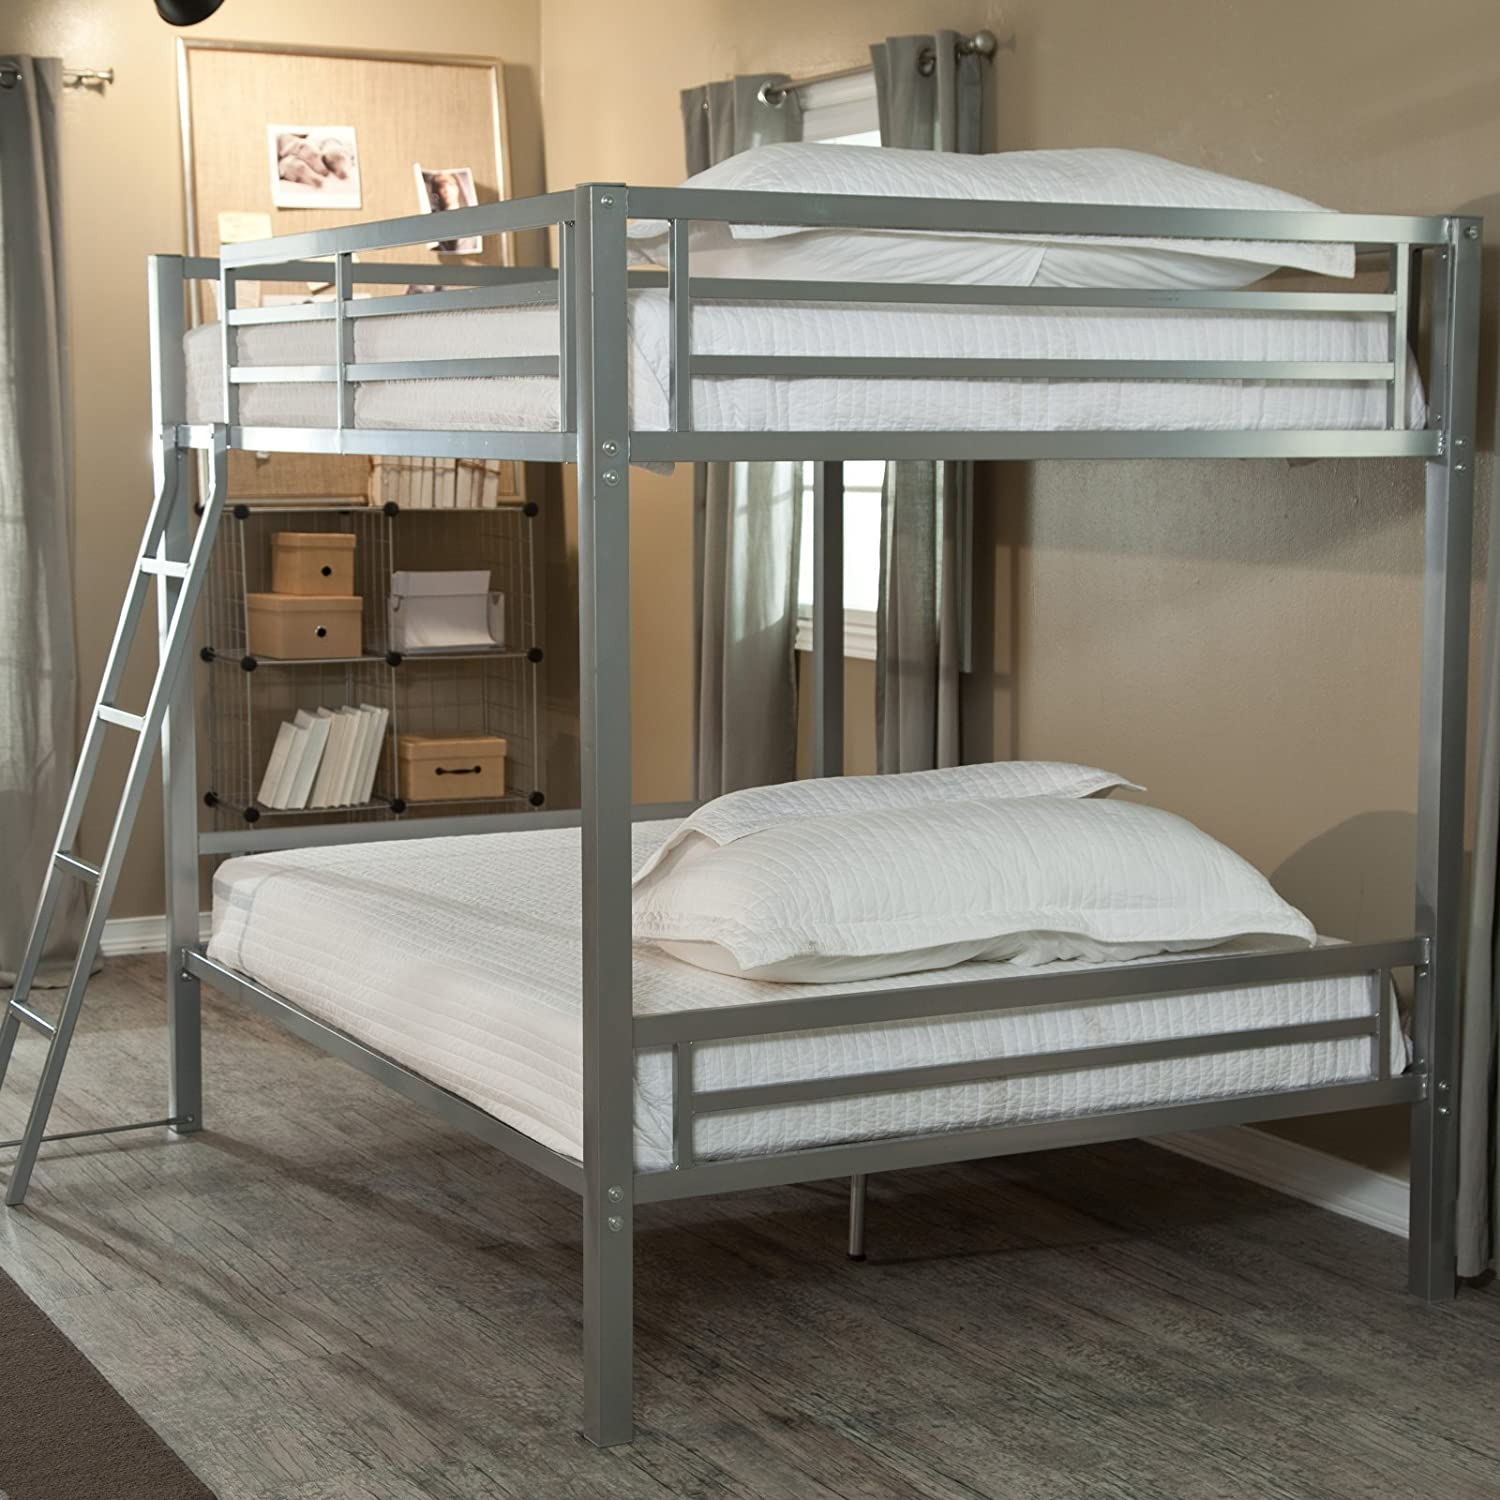 donco trading full products threshold co bunk home morris twin item height beds bed width trim nordennorden norden